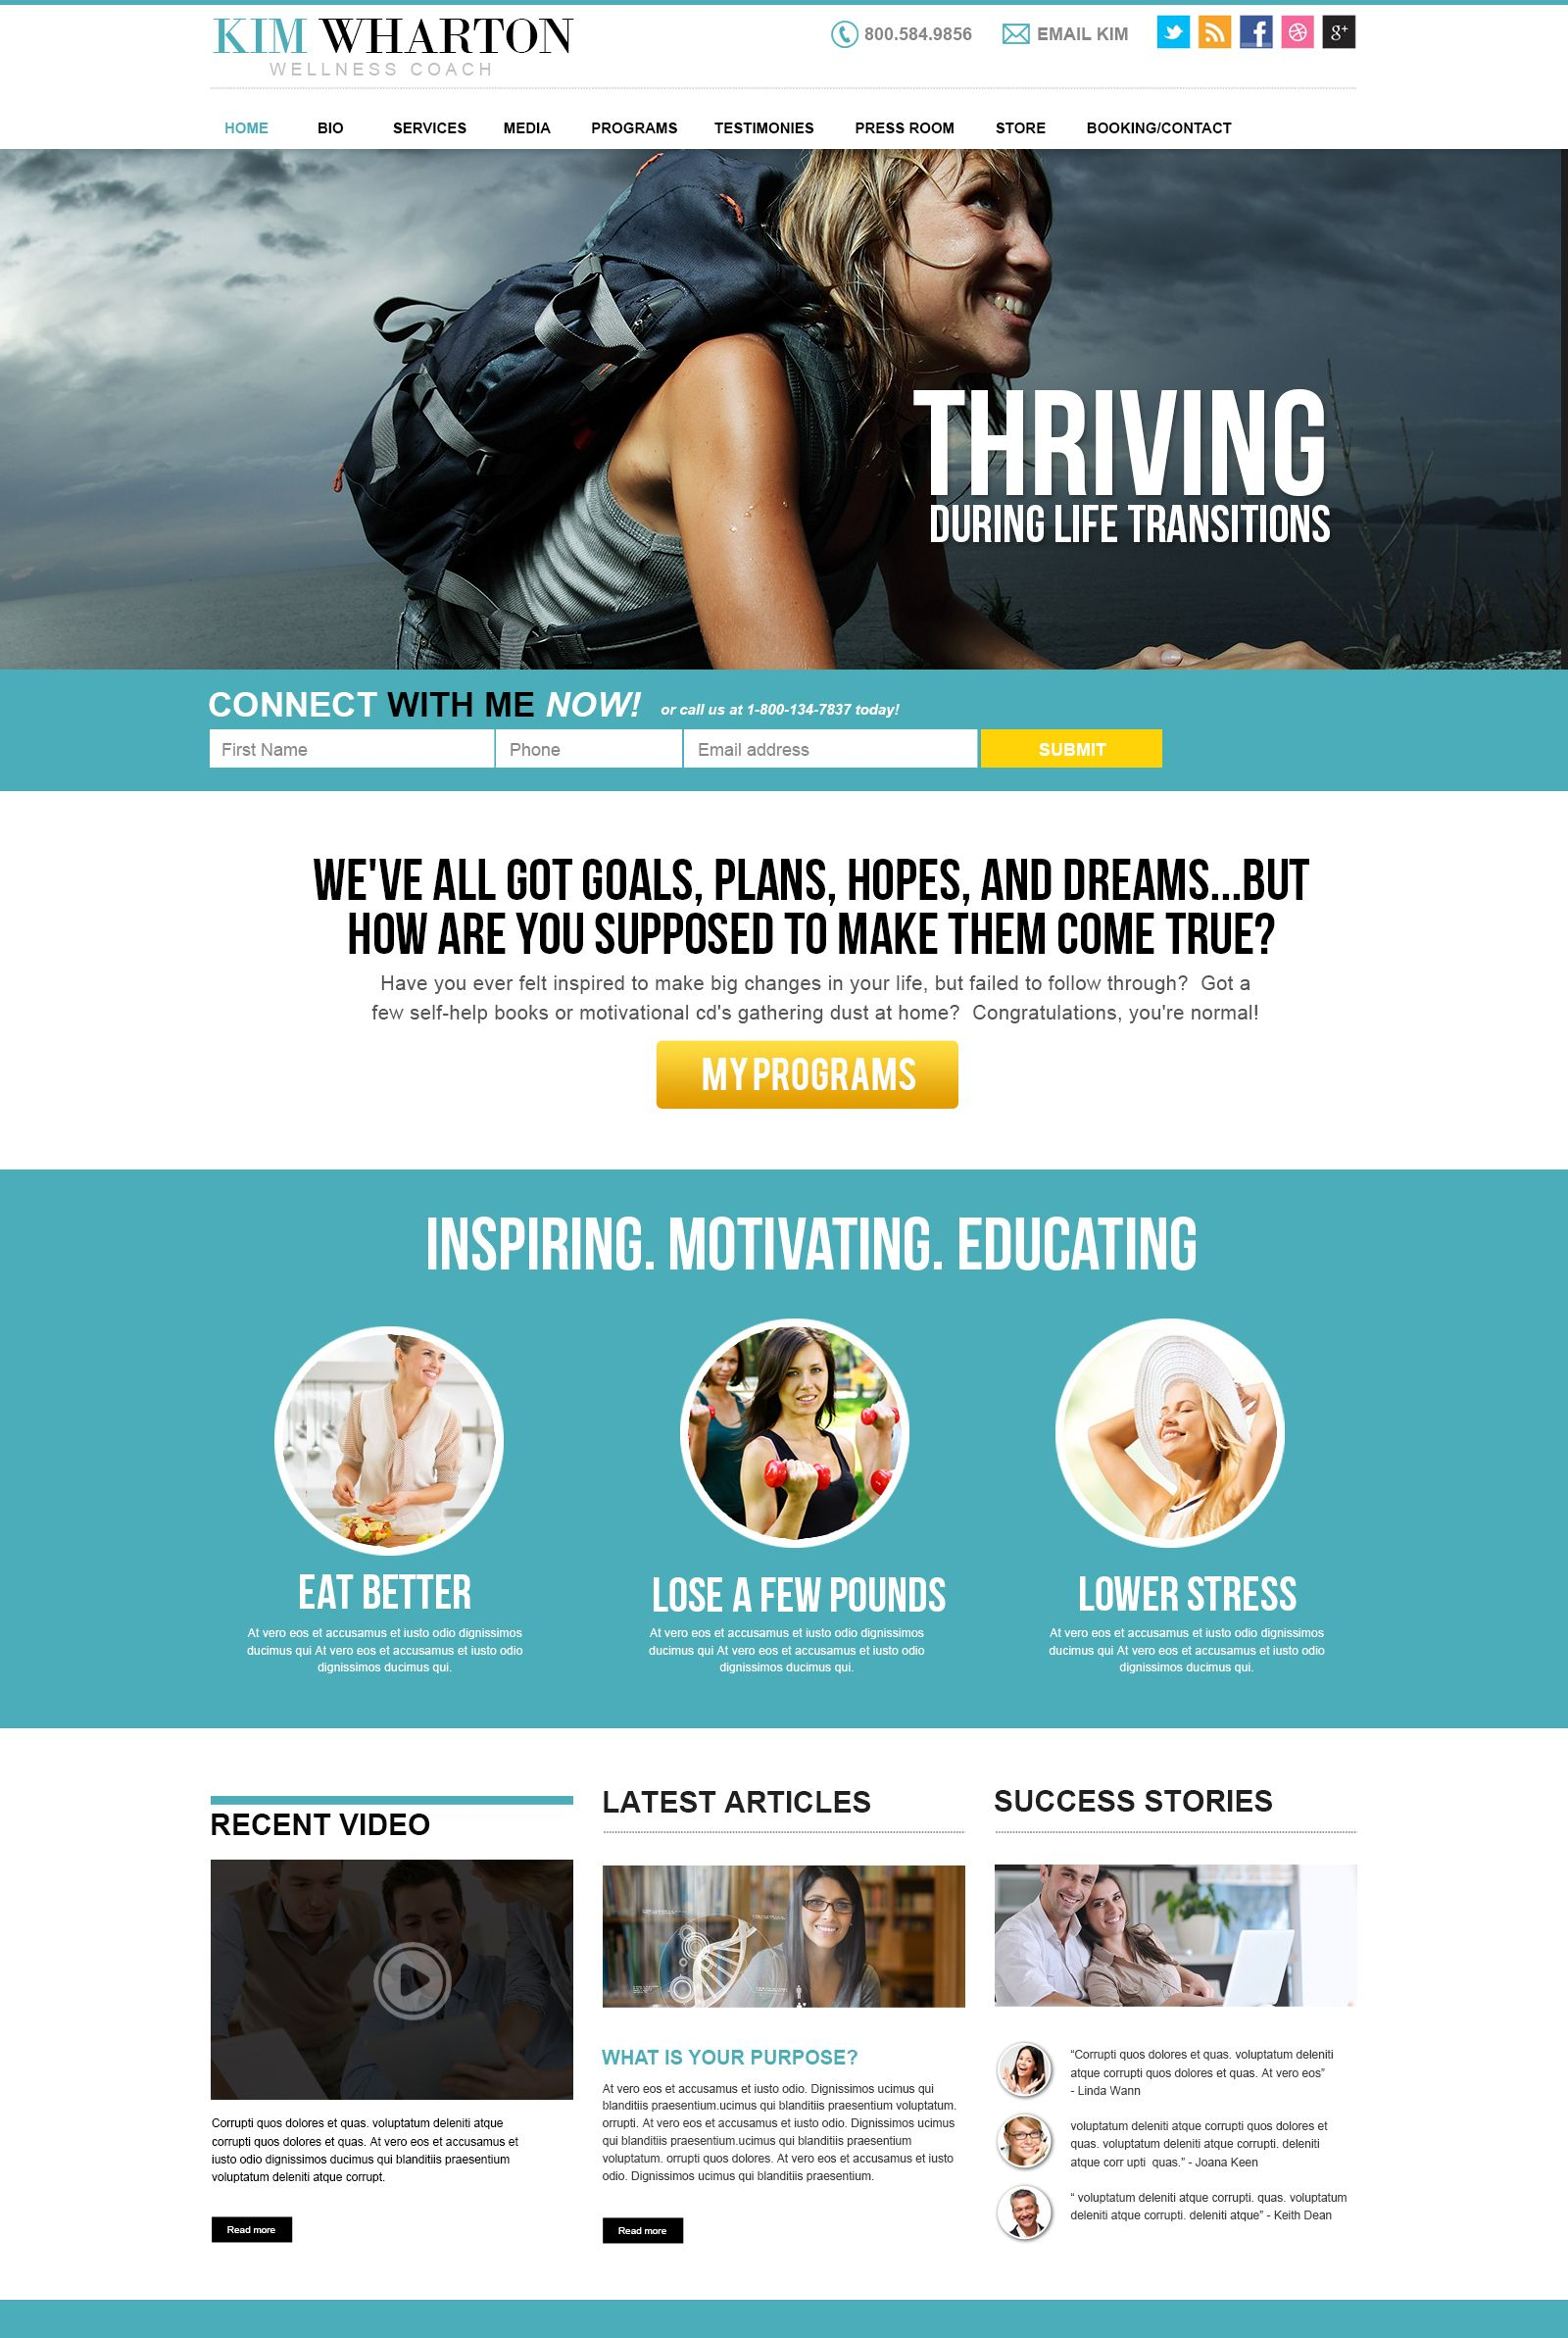 Wellness Coach Website Design Concept Make An Impact Have The Tools Strategies You Need To Succeed Wi Coach Website Wellness Coach Website Design Inspiration